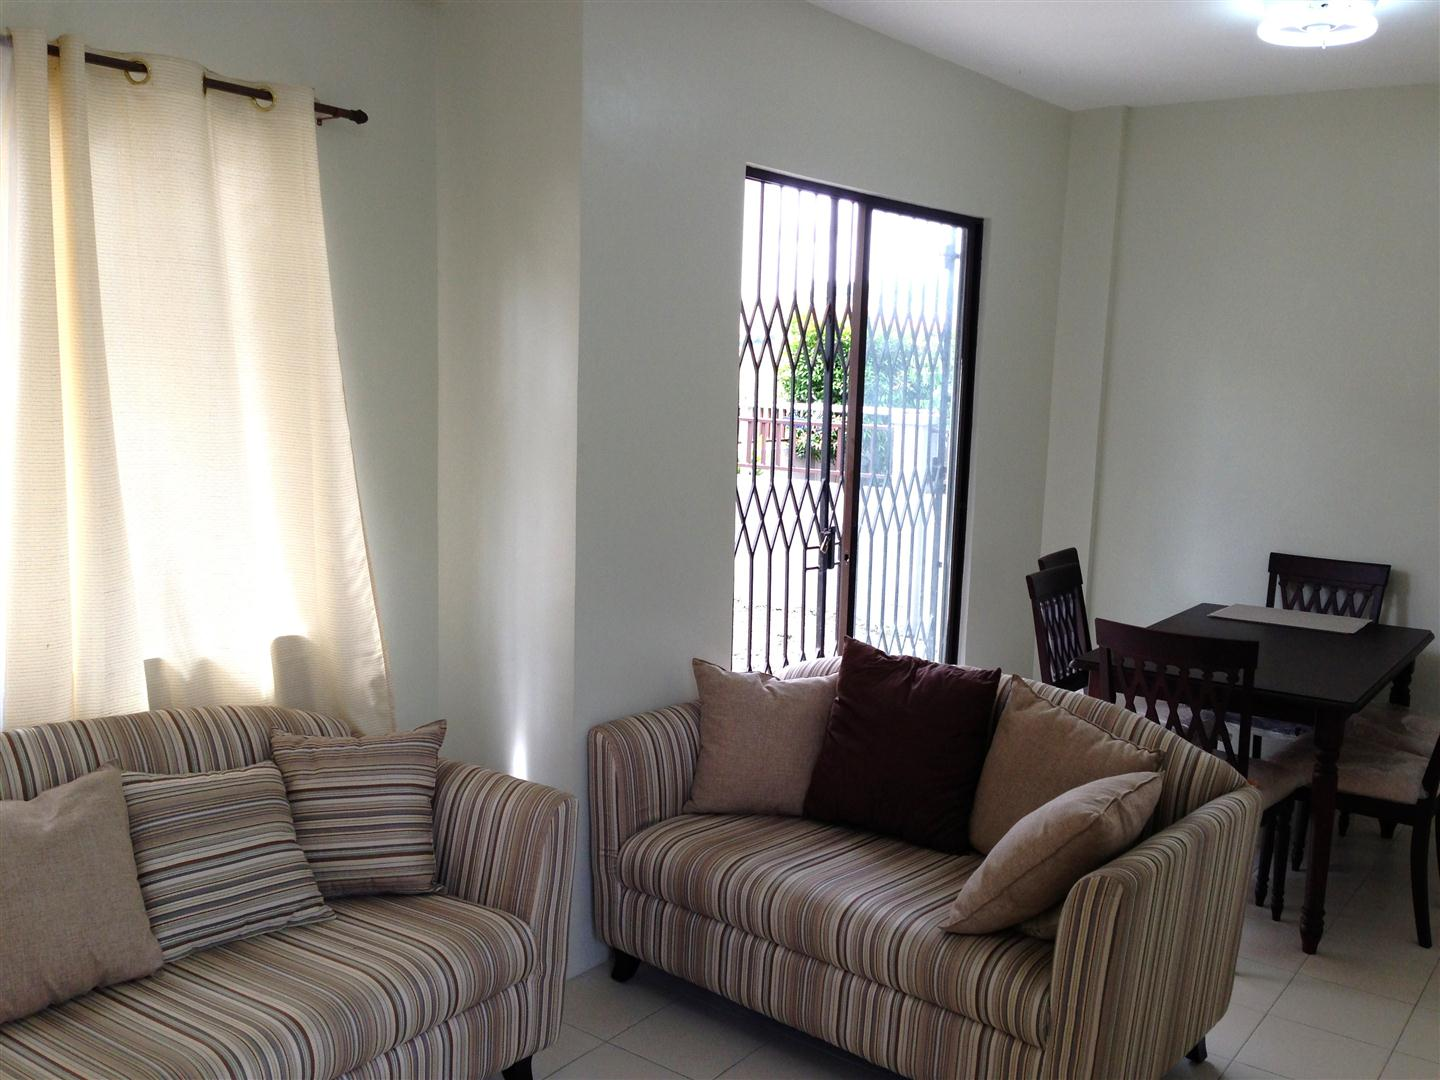 townhouse-with-4-bedrooms-located-in-talisay-city-cebu